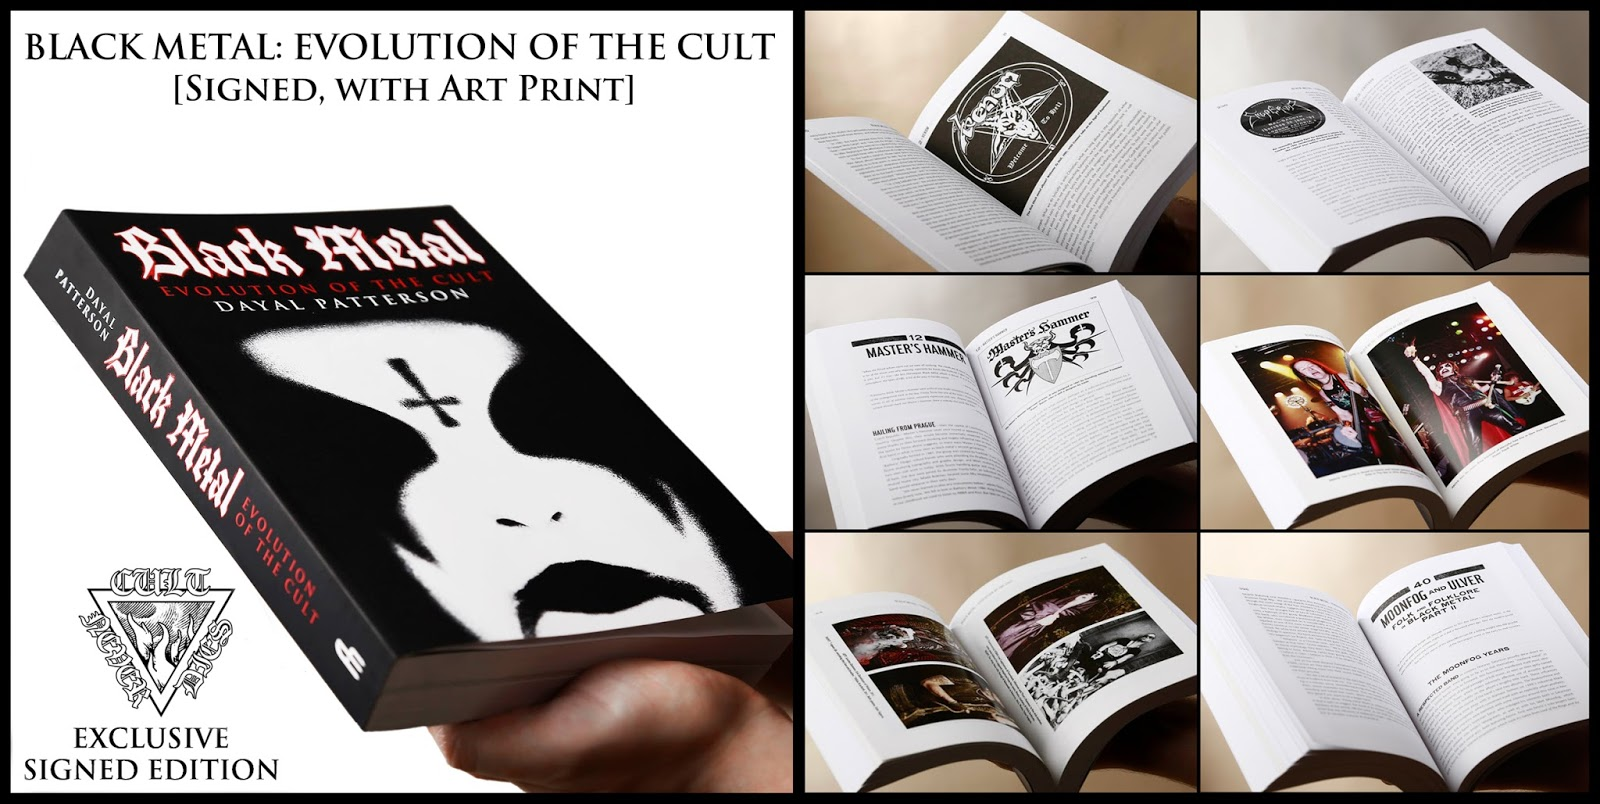 Cult Never Dies Productions